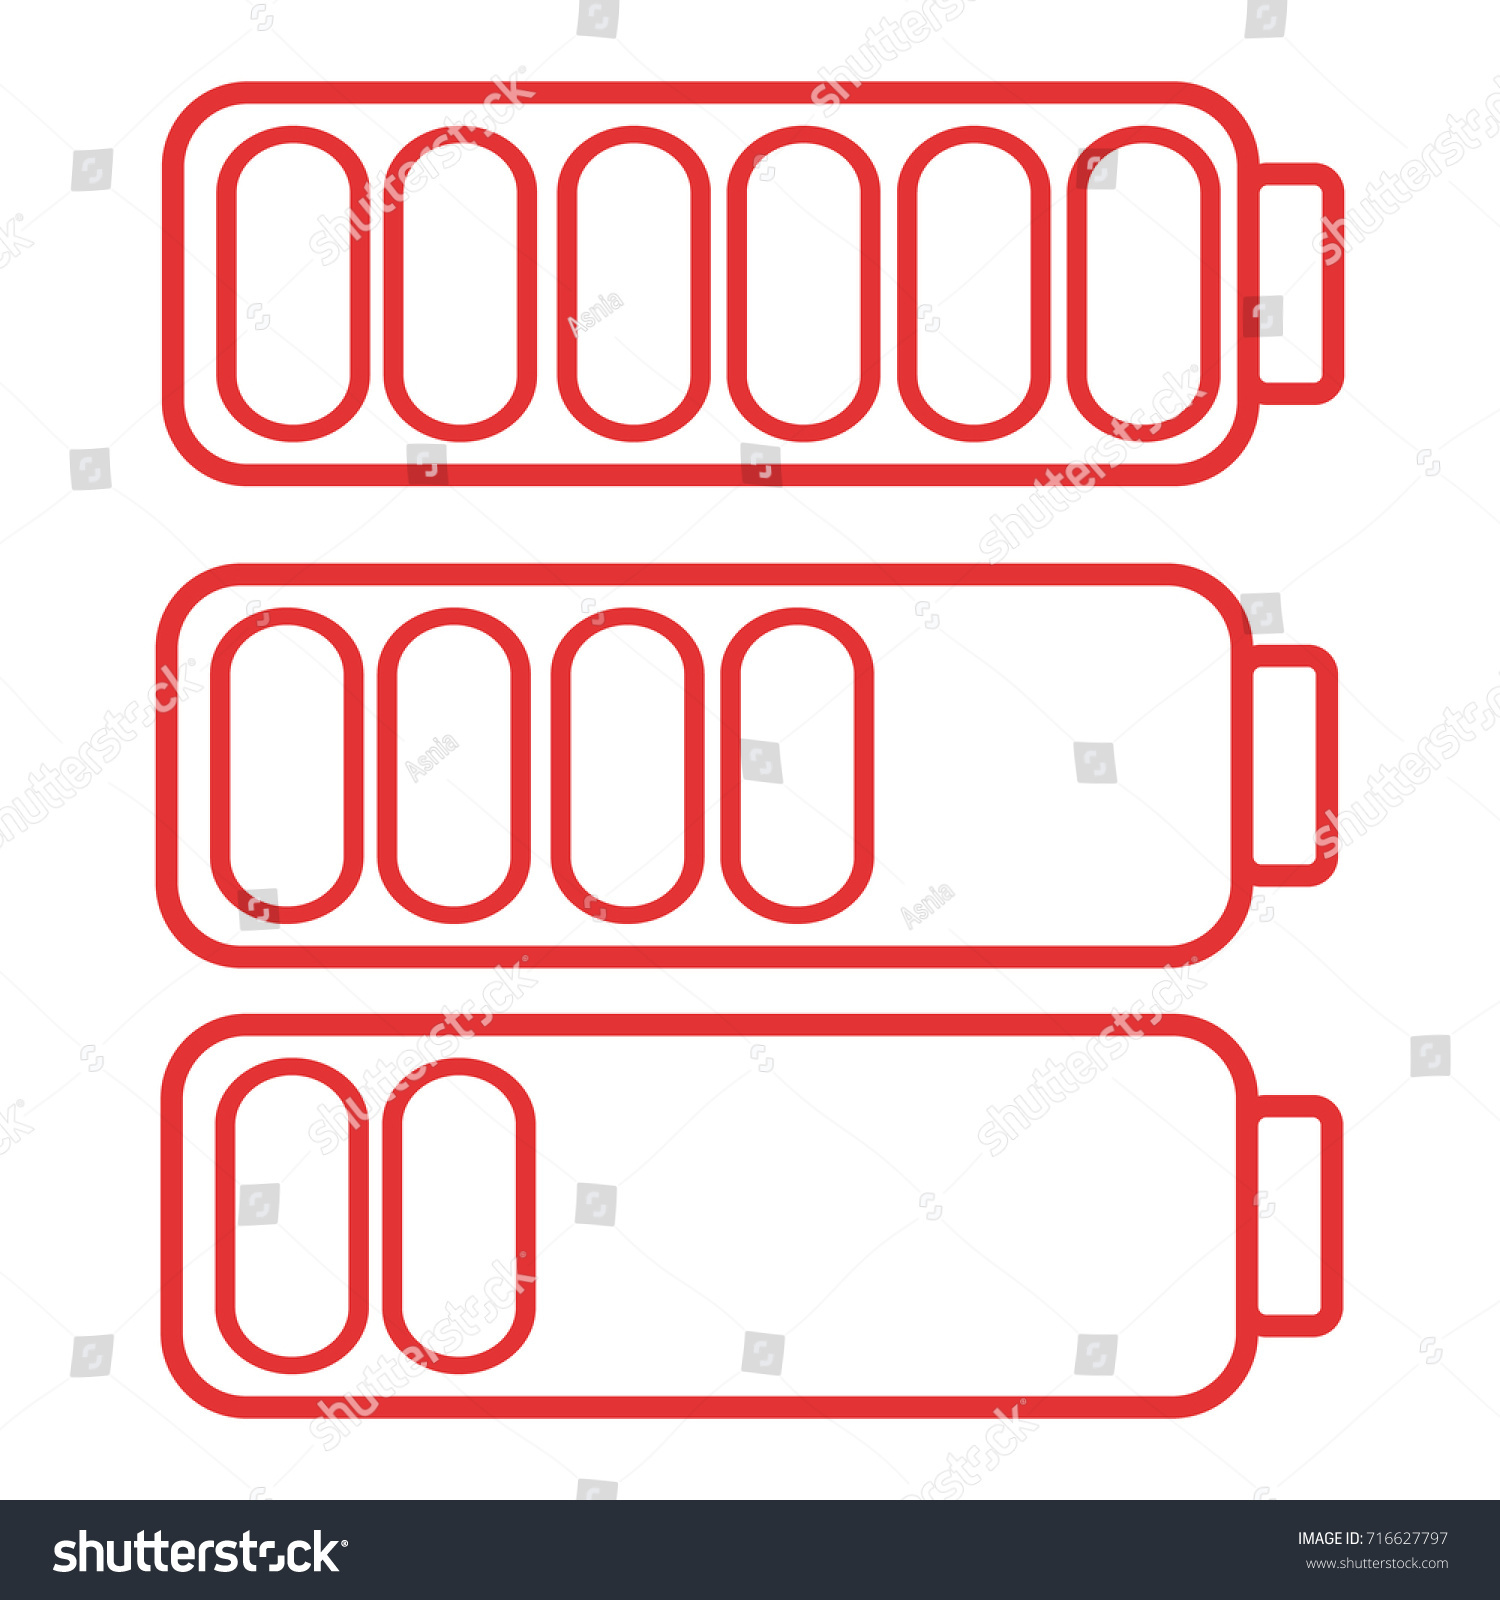 Smart phone cell phone low battery stock vector 716627797 smart phone or cell phone low battery icon low energy symbol flat vector illustration biocorpaavc Images